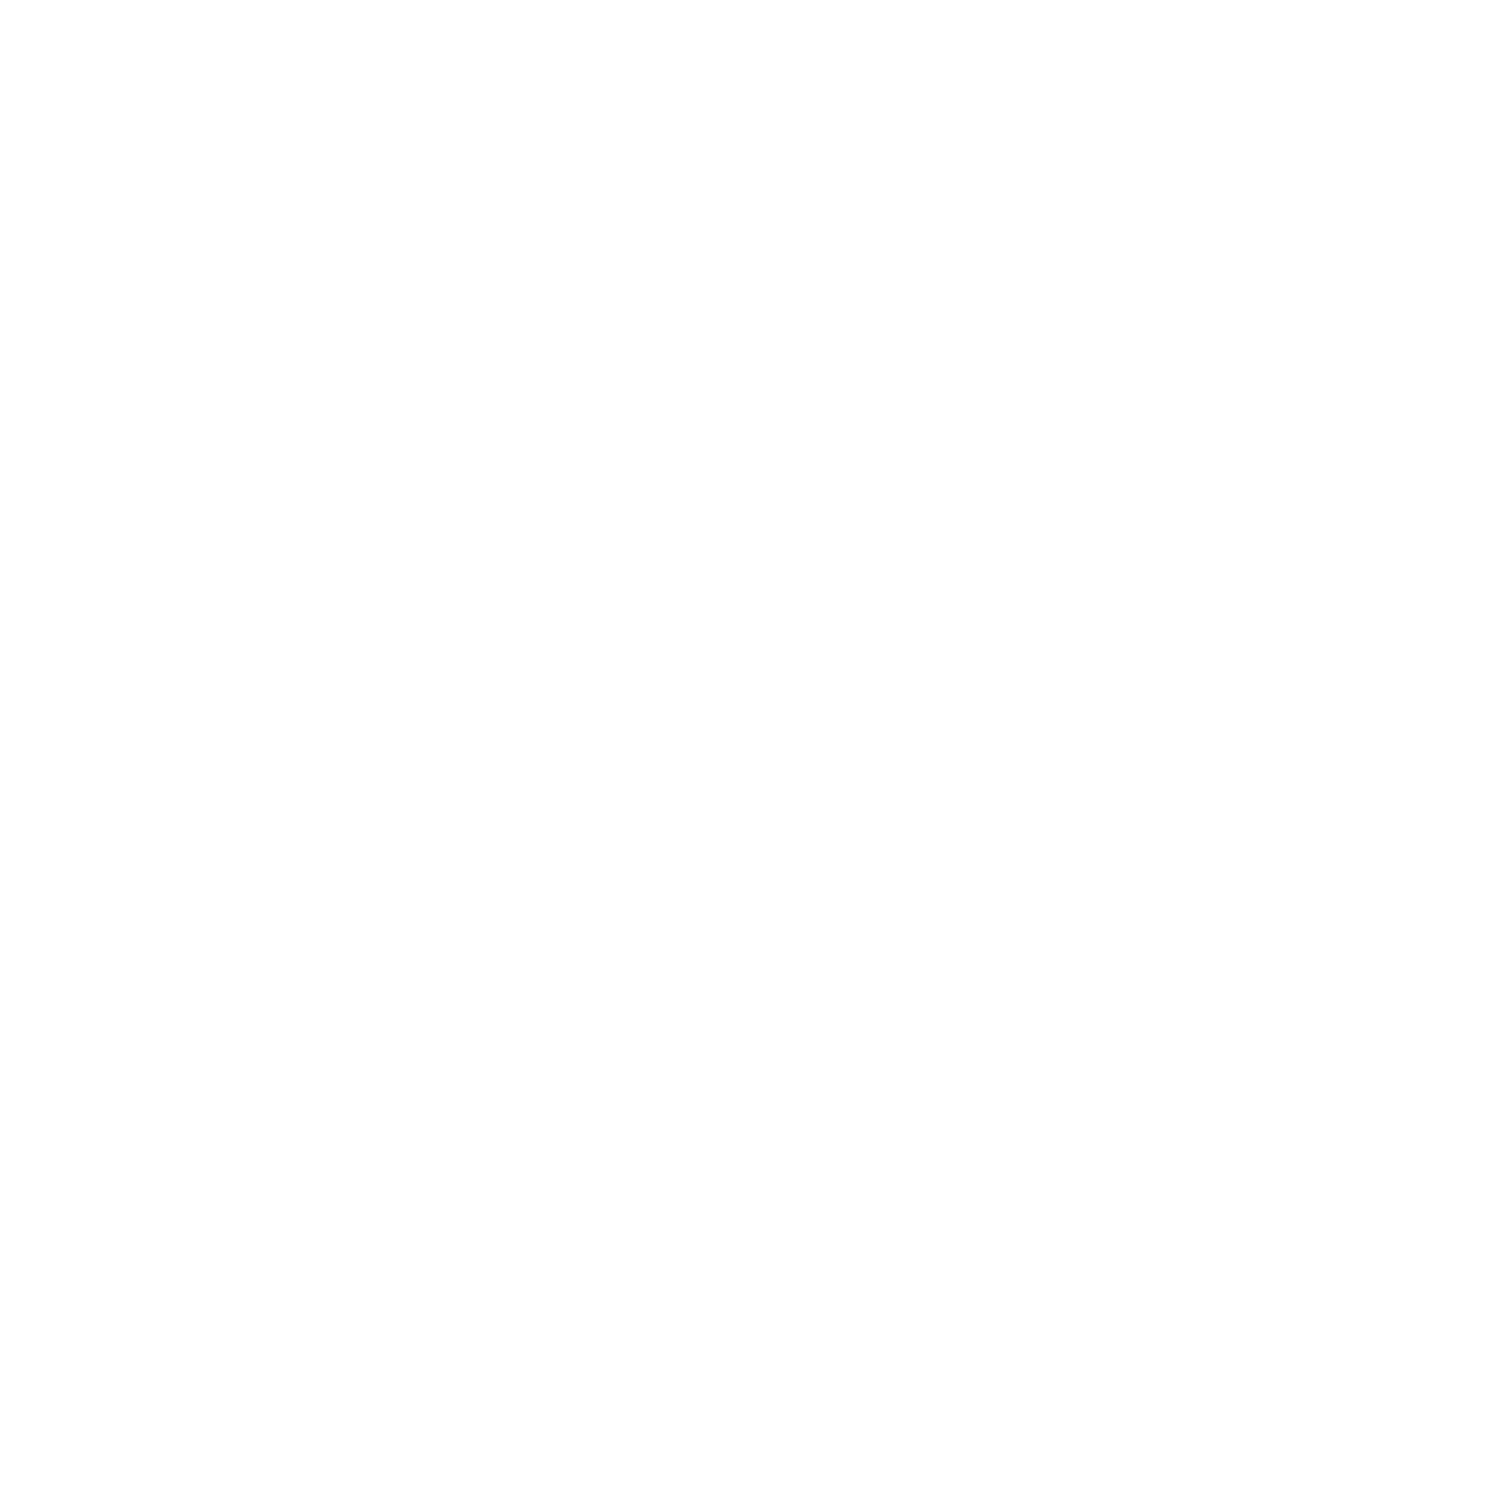 Bright Shot Photography